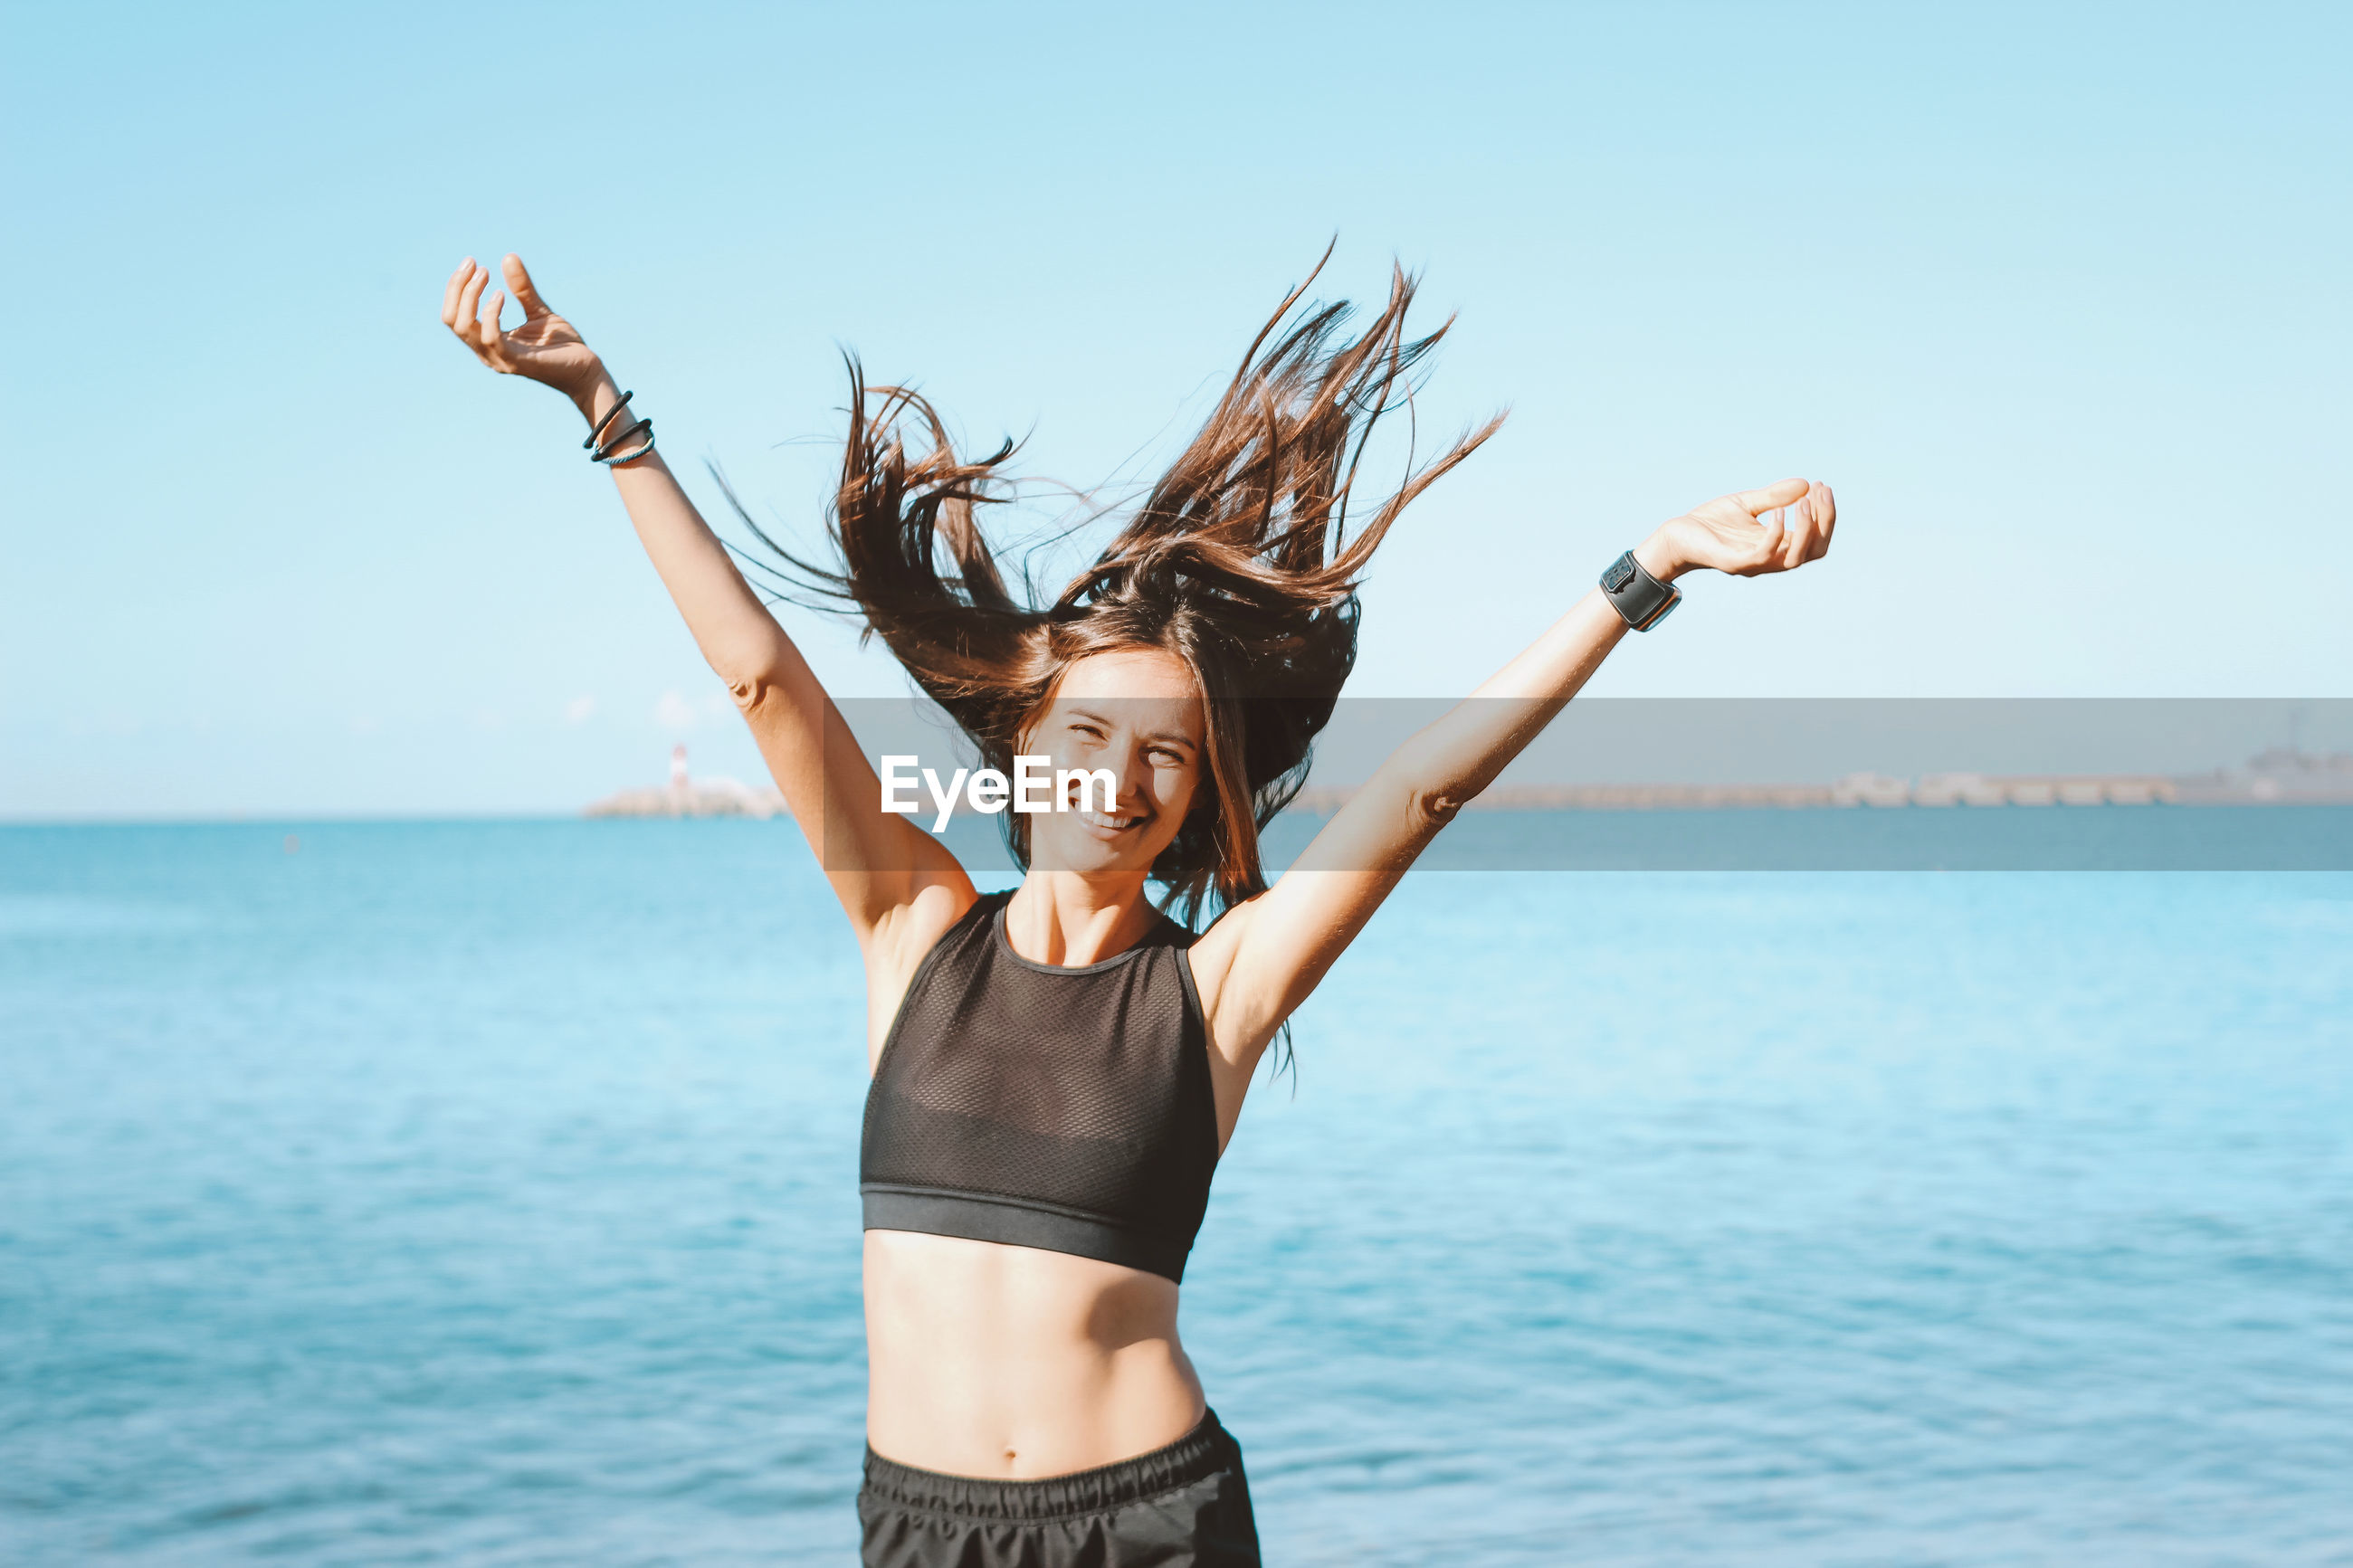 Portrait of woman standing with arms outstretched at beach against sky